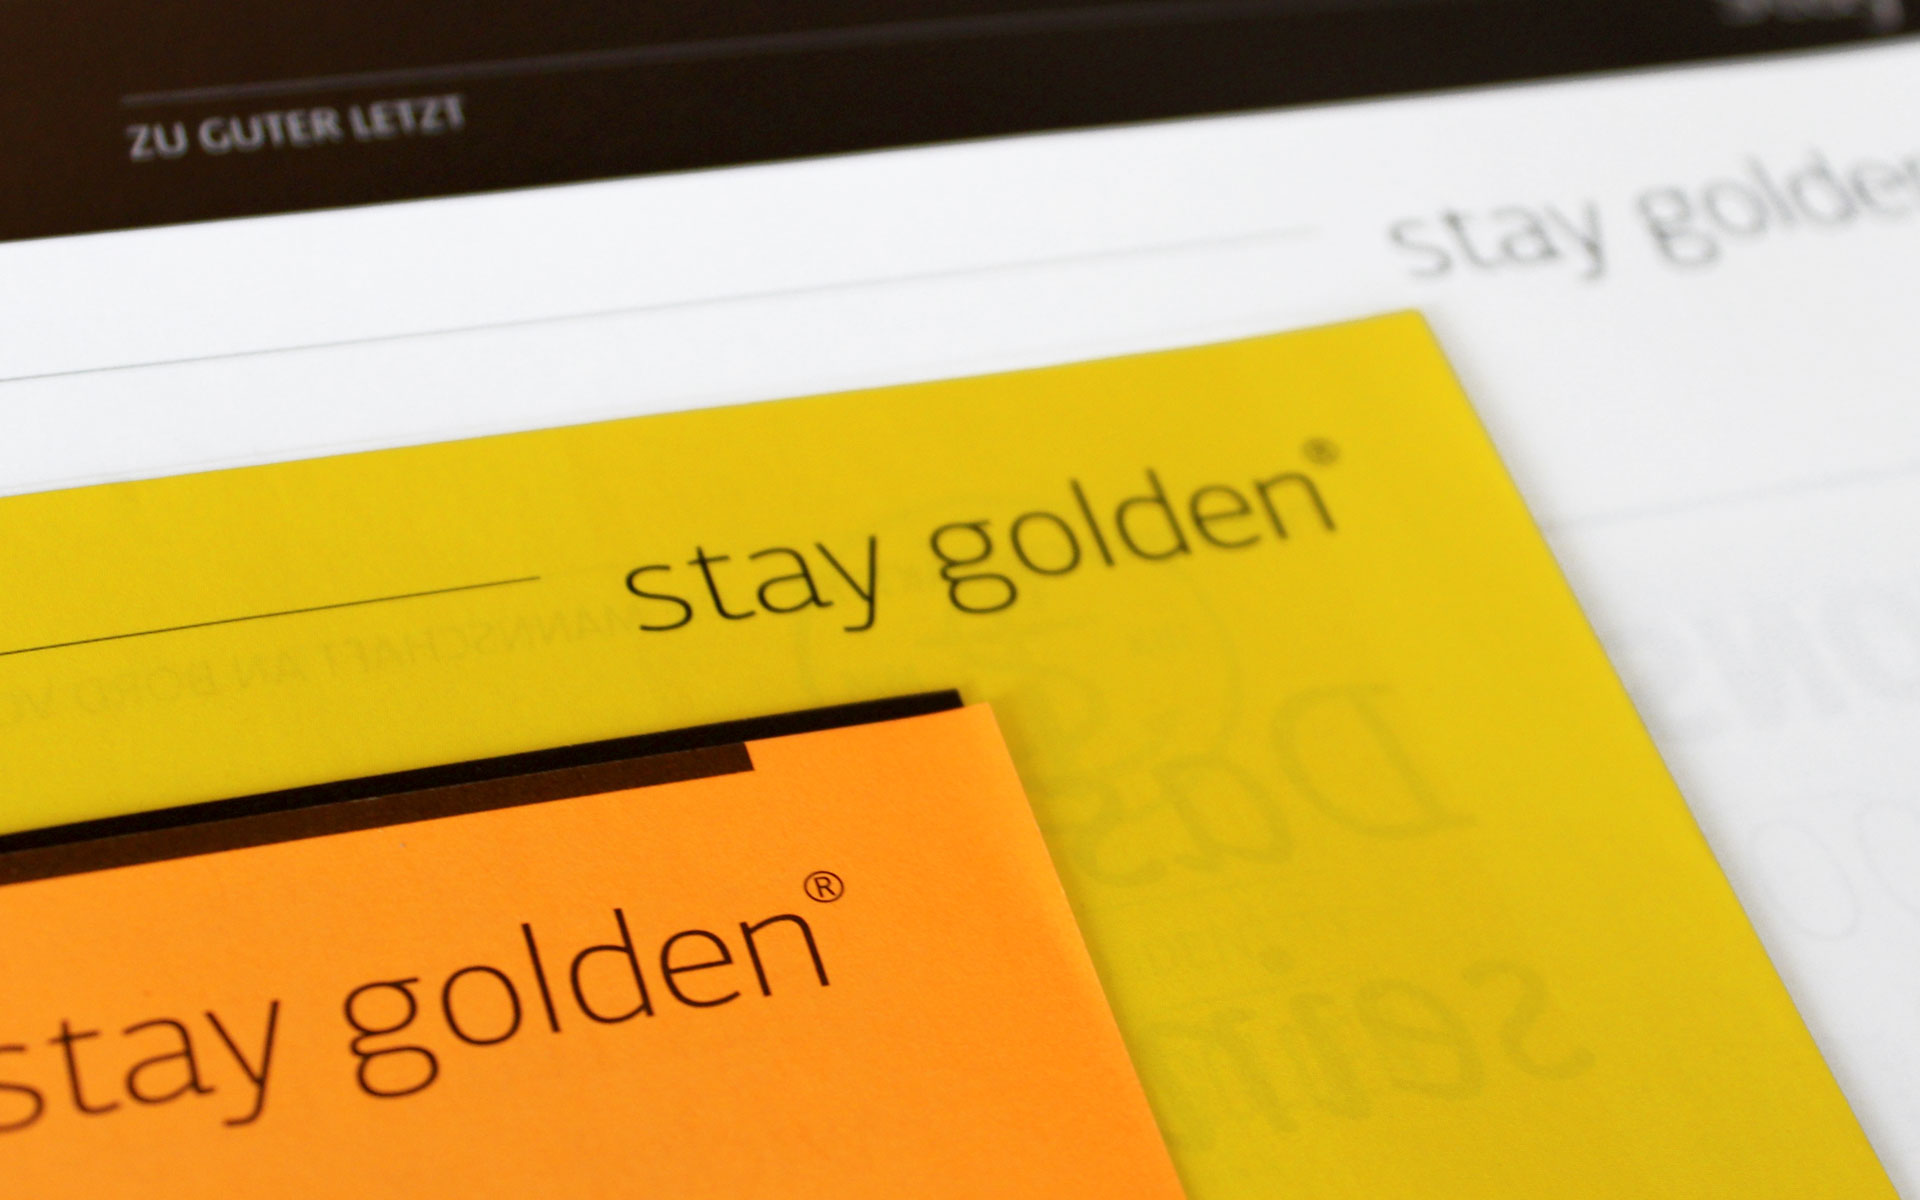 stay golden Brand Identity, Corporate Design, Newsletter 804-staygolden